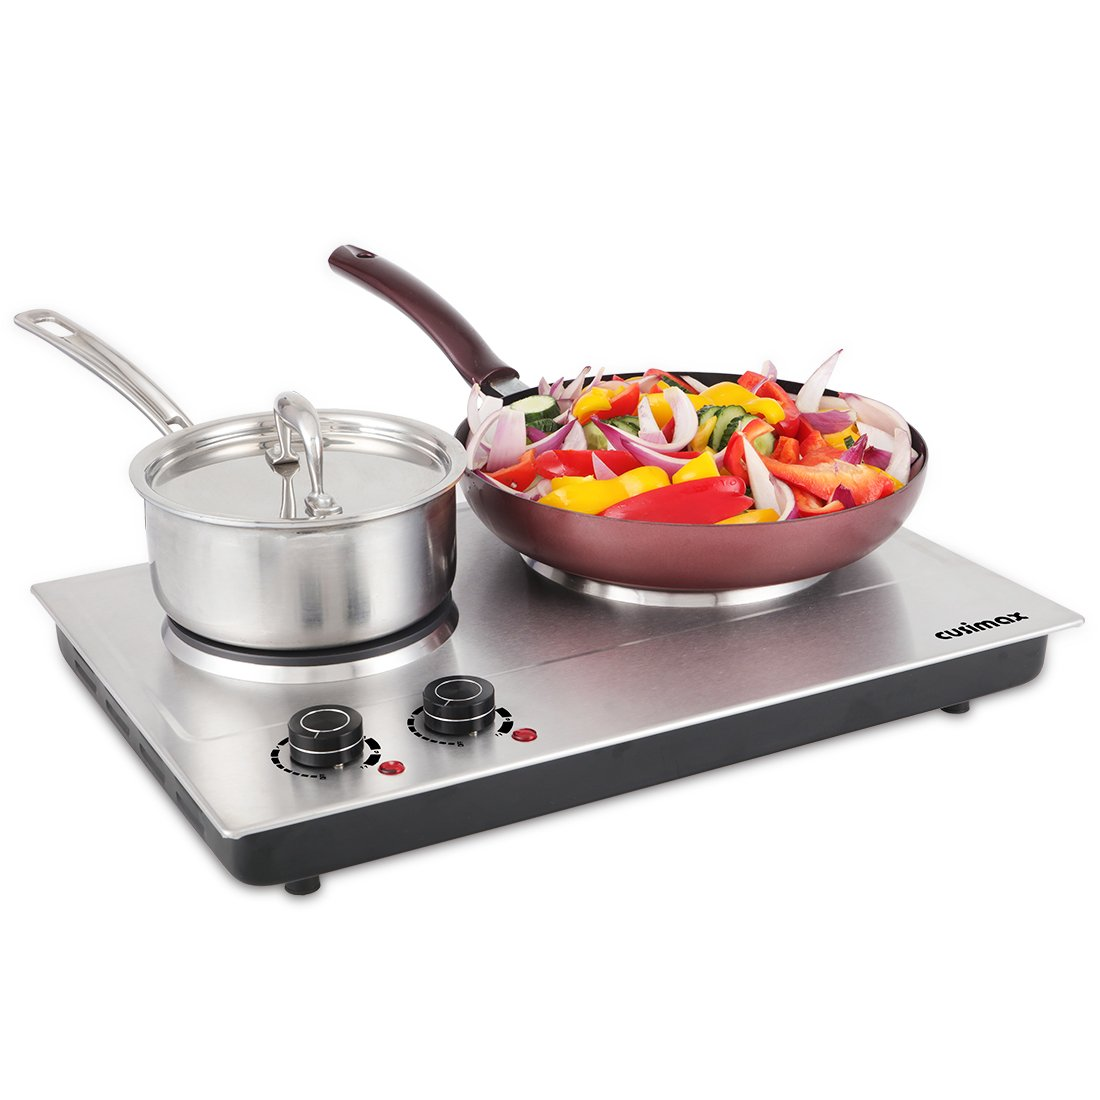 Best Countertop Burner Reviews for the Modern Kitchen 8